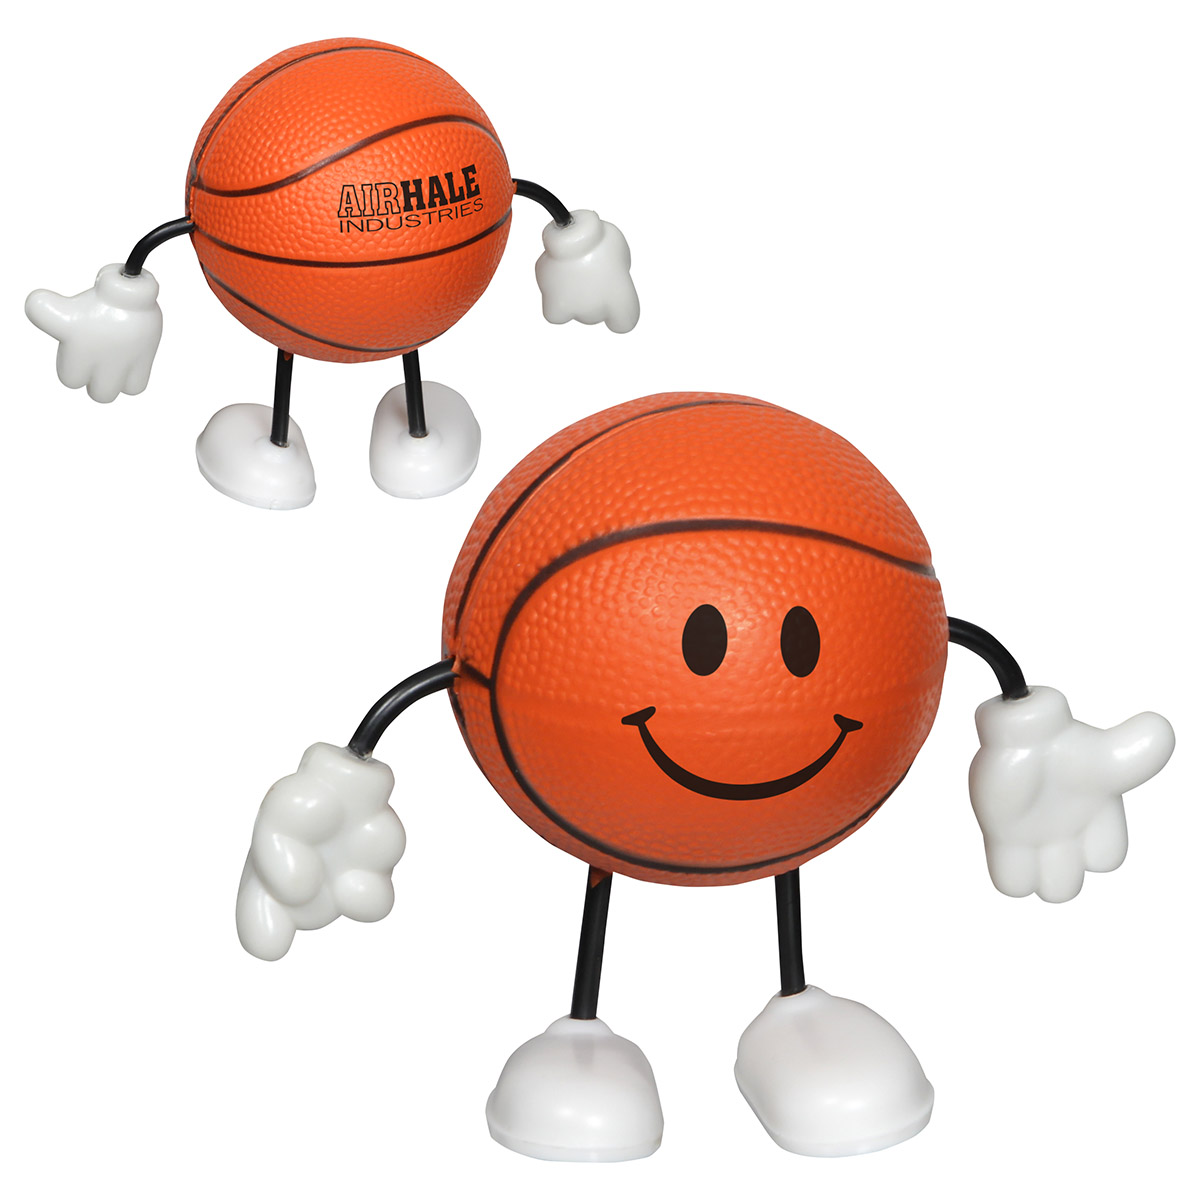 Basketball Stress Reliever Figure, LCH-BK02, 1 Colour Imprint